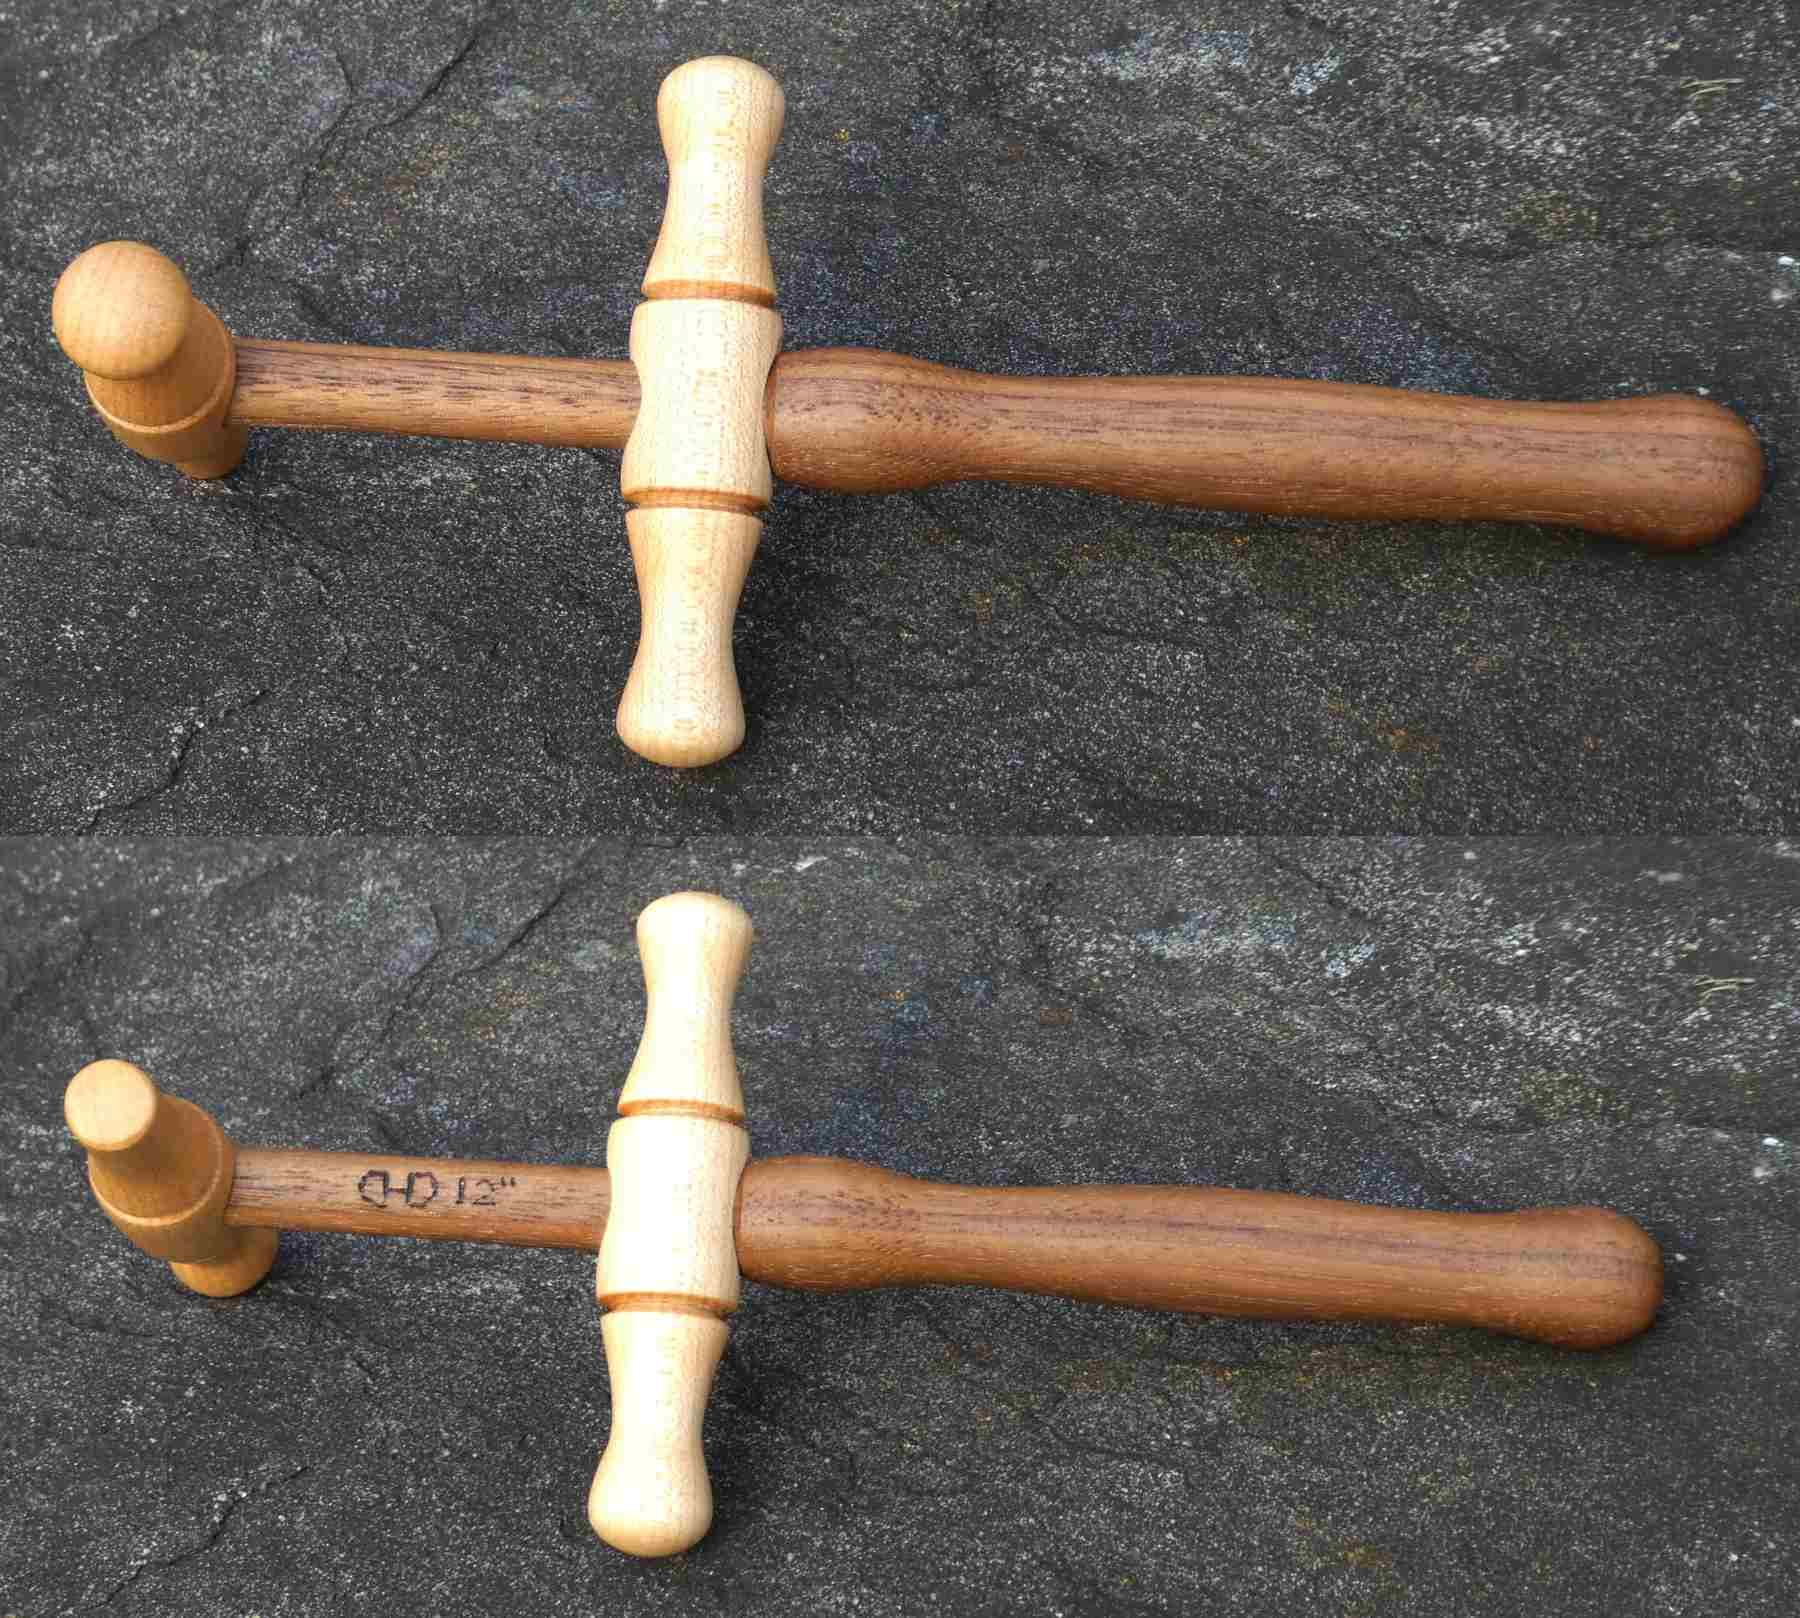 Maple and Walnut niddy-noddy hand turned for winding mini skein of yarn 12 inch long.  Made by Cynthia D. Haney For Sale at Cynthia Wood Spinner.